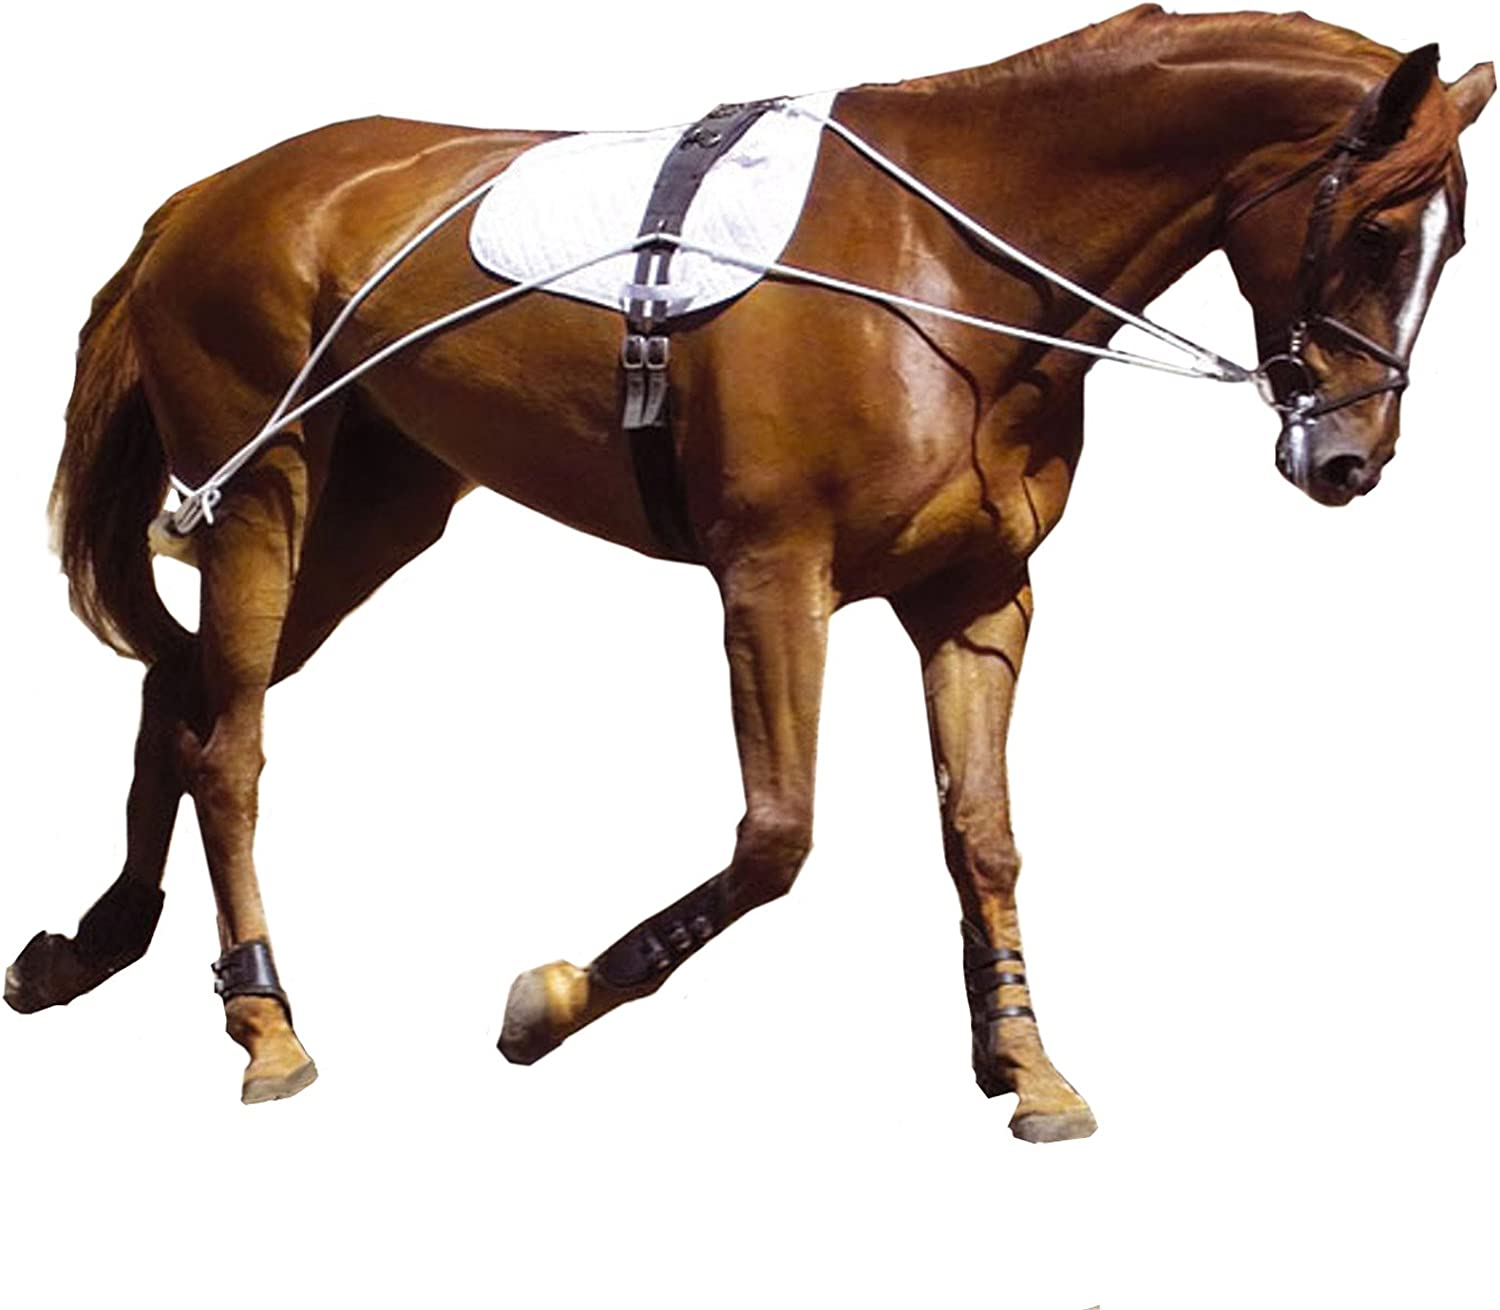 (01. Small Pony, White)  Hunters Saddlery Ultimate Horse Lunging Training Aid System Lunge Equipment  Pony, Cob Horse, Draught Size